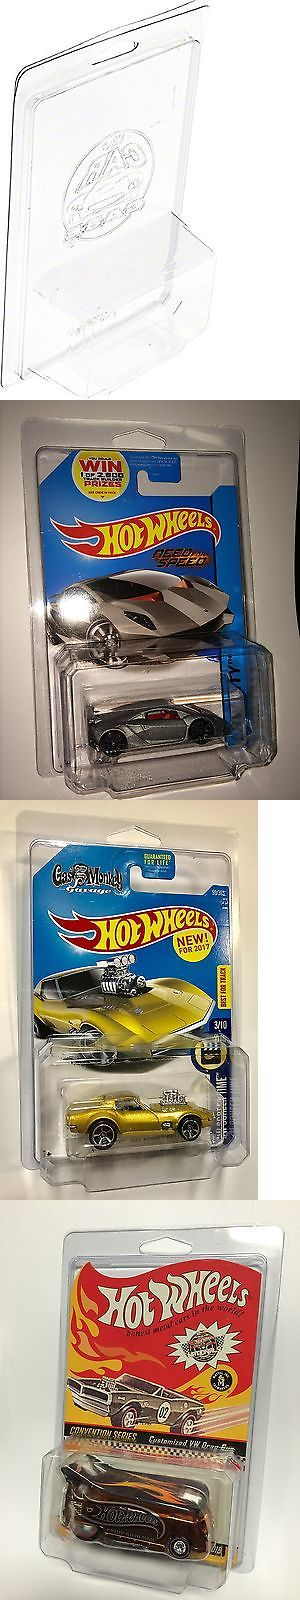 Display Cases and Stands 171135: Hot Wheels Car Case By Protech 25Ct. Bundle No Tax -> BUY IT NOW ONLY: $51.3 on eBay!